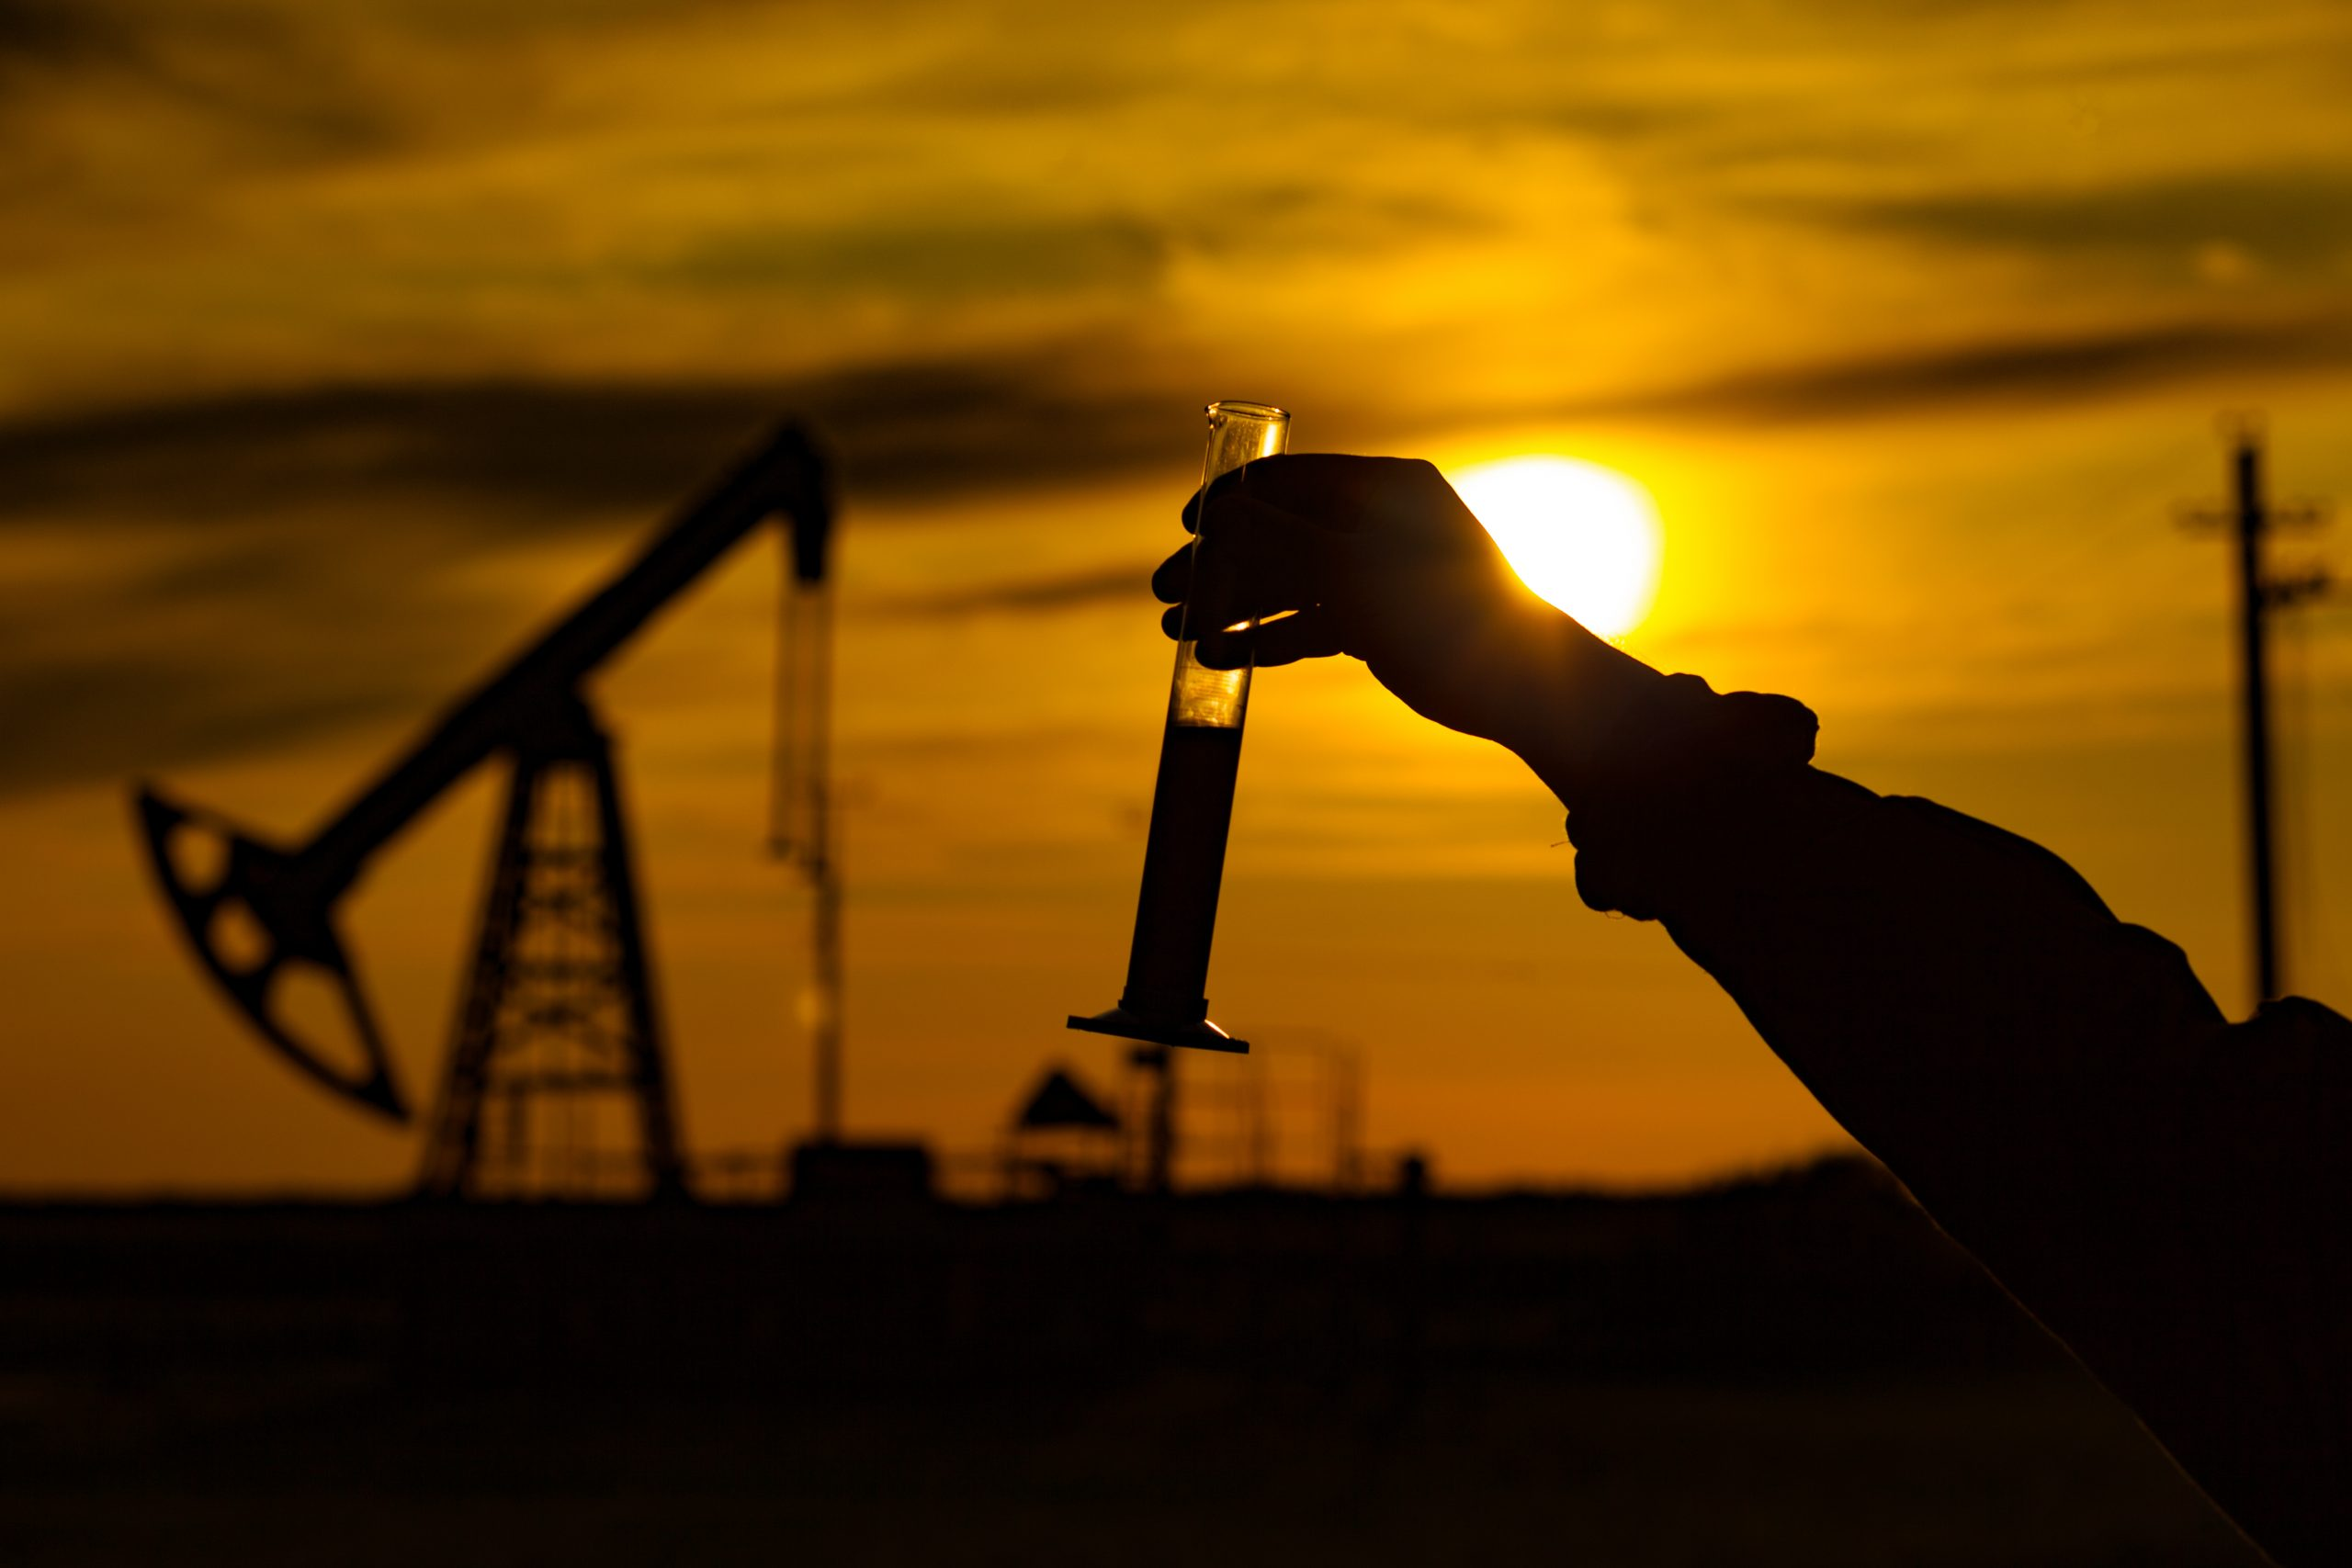 A man holding a flask of oil. Oil rigs in the background. Oil production in Russia. Sunset. Oil pumping